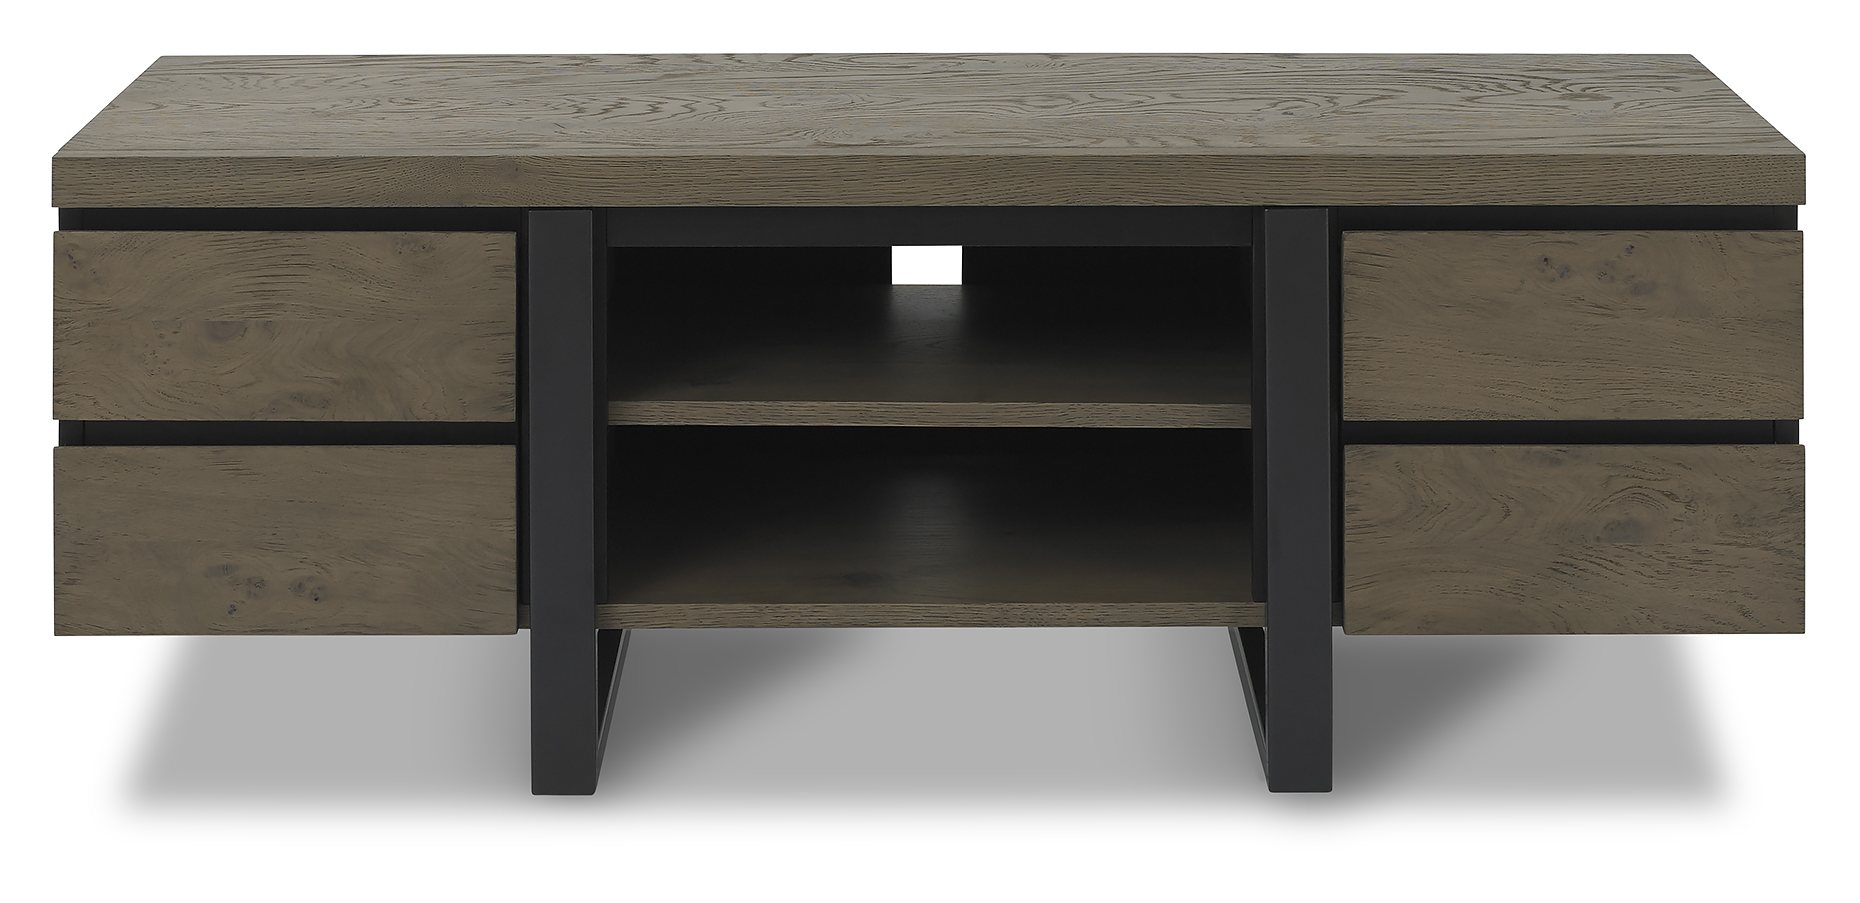 BRINDISI TV UNIT FRONT VIEW